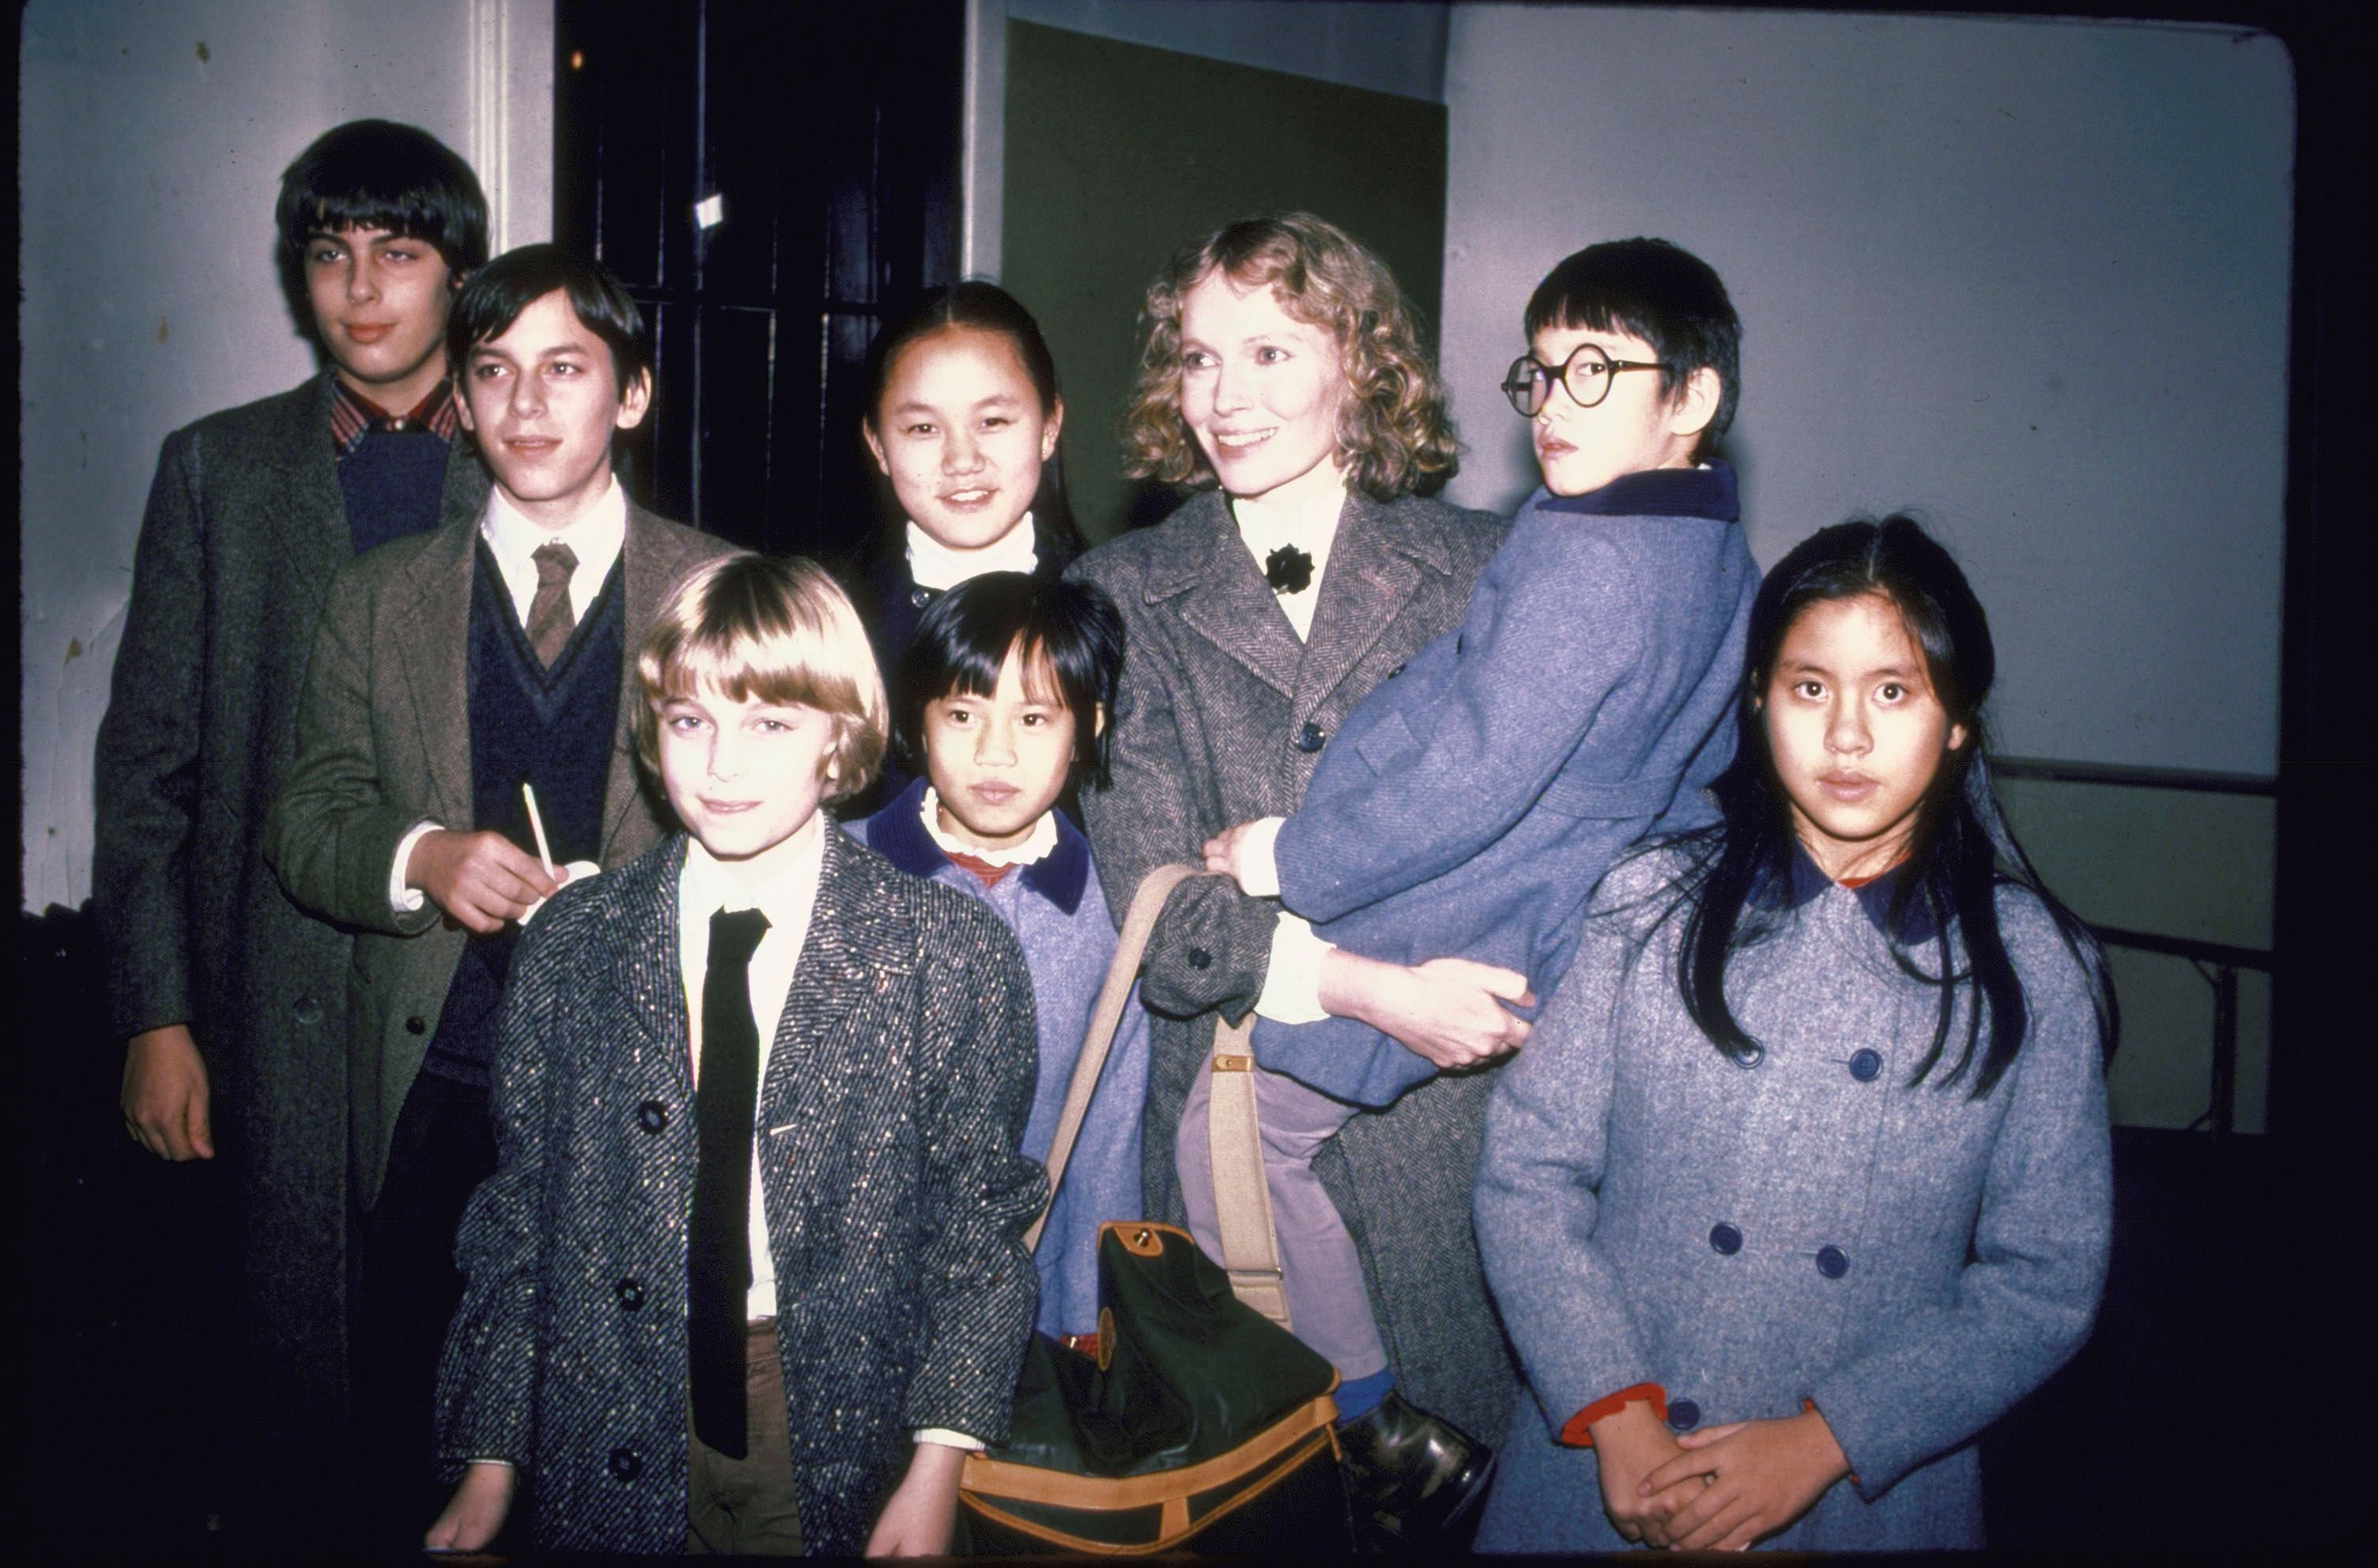 Mia Farrow and children, including daughter Soon Yi Previn on January 01, 1991   Photo: Getty Images